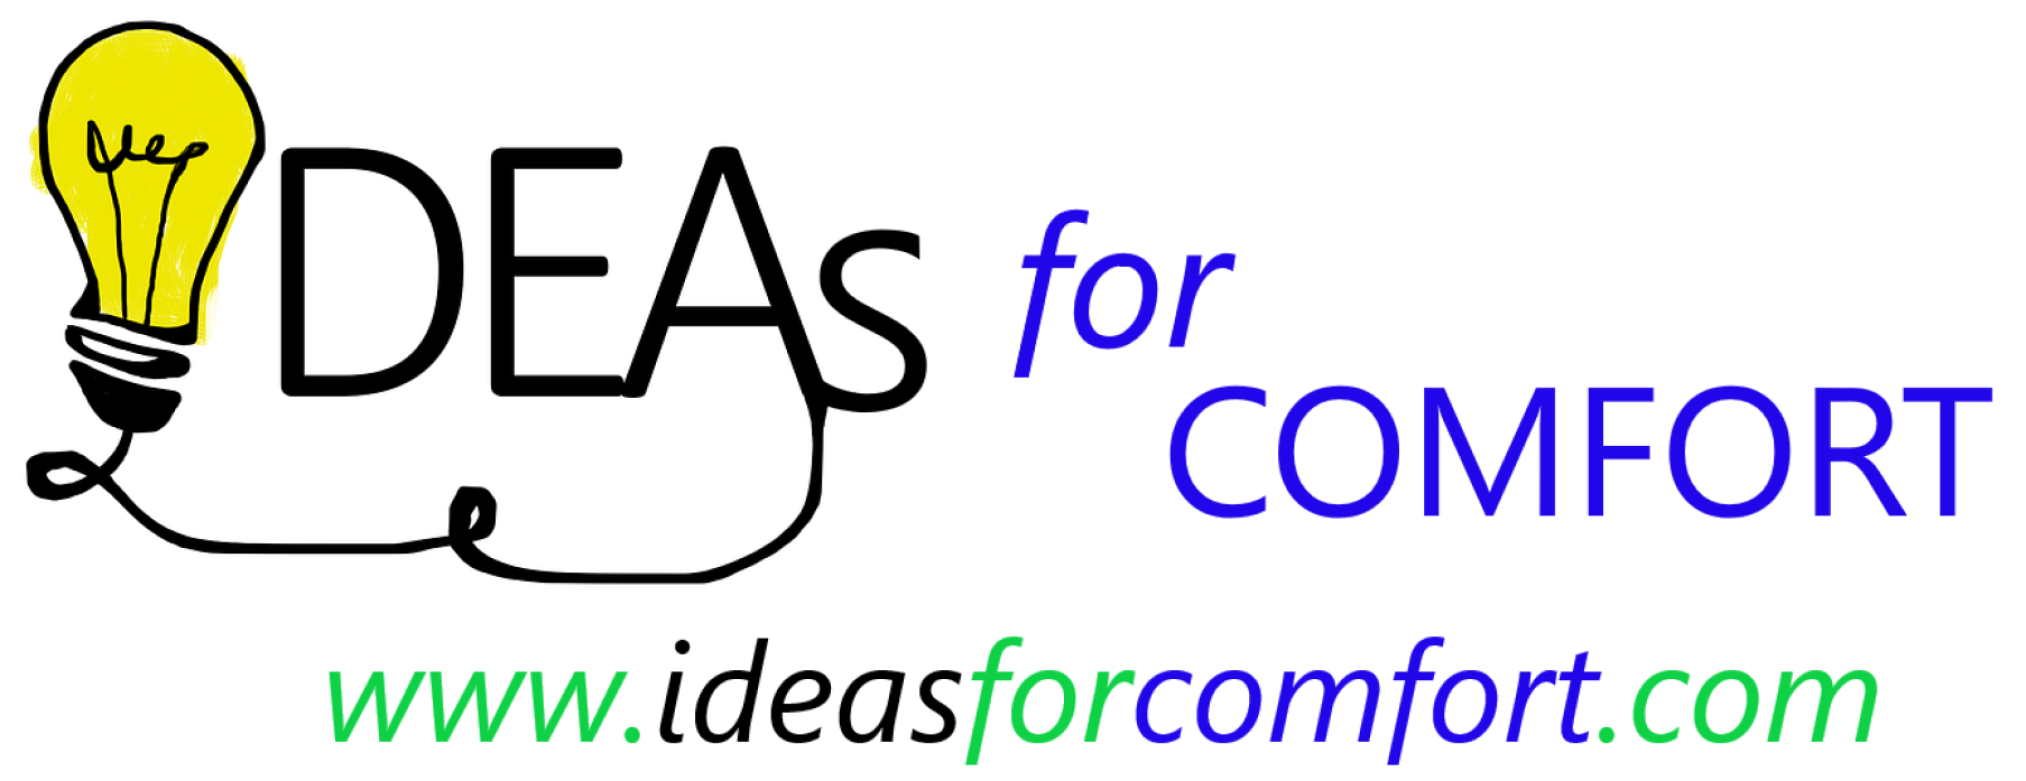 Ideas for Comfort